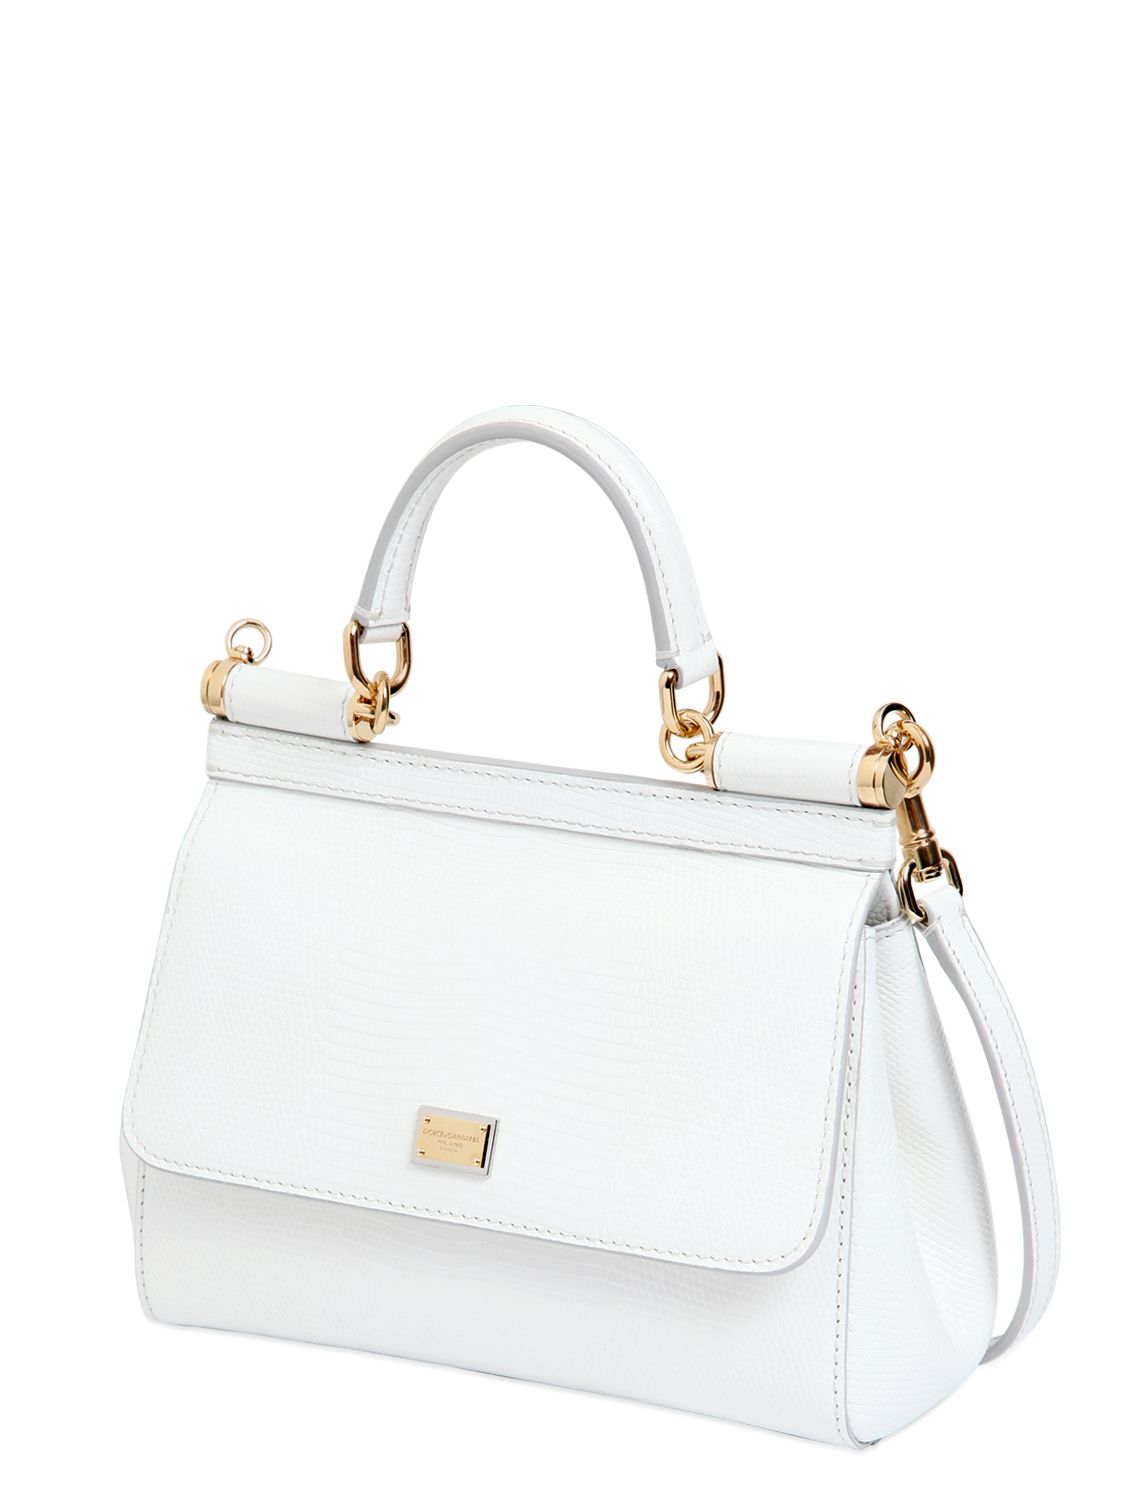 Lyst - Dolce   Gabbana Small Sicily Iguana Embossed Leather Bag in White b904dfb9e2fdc